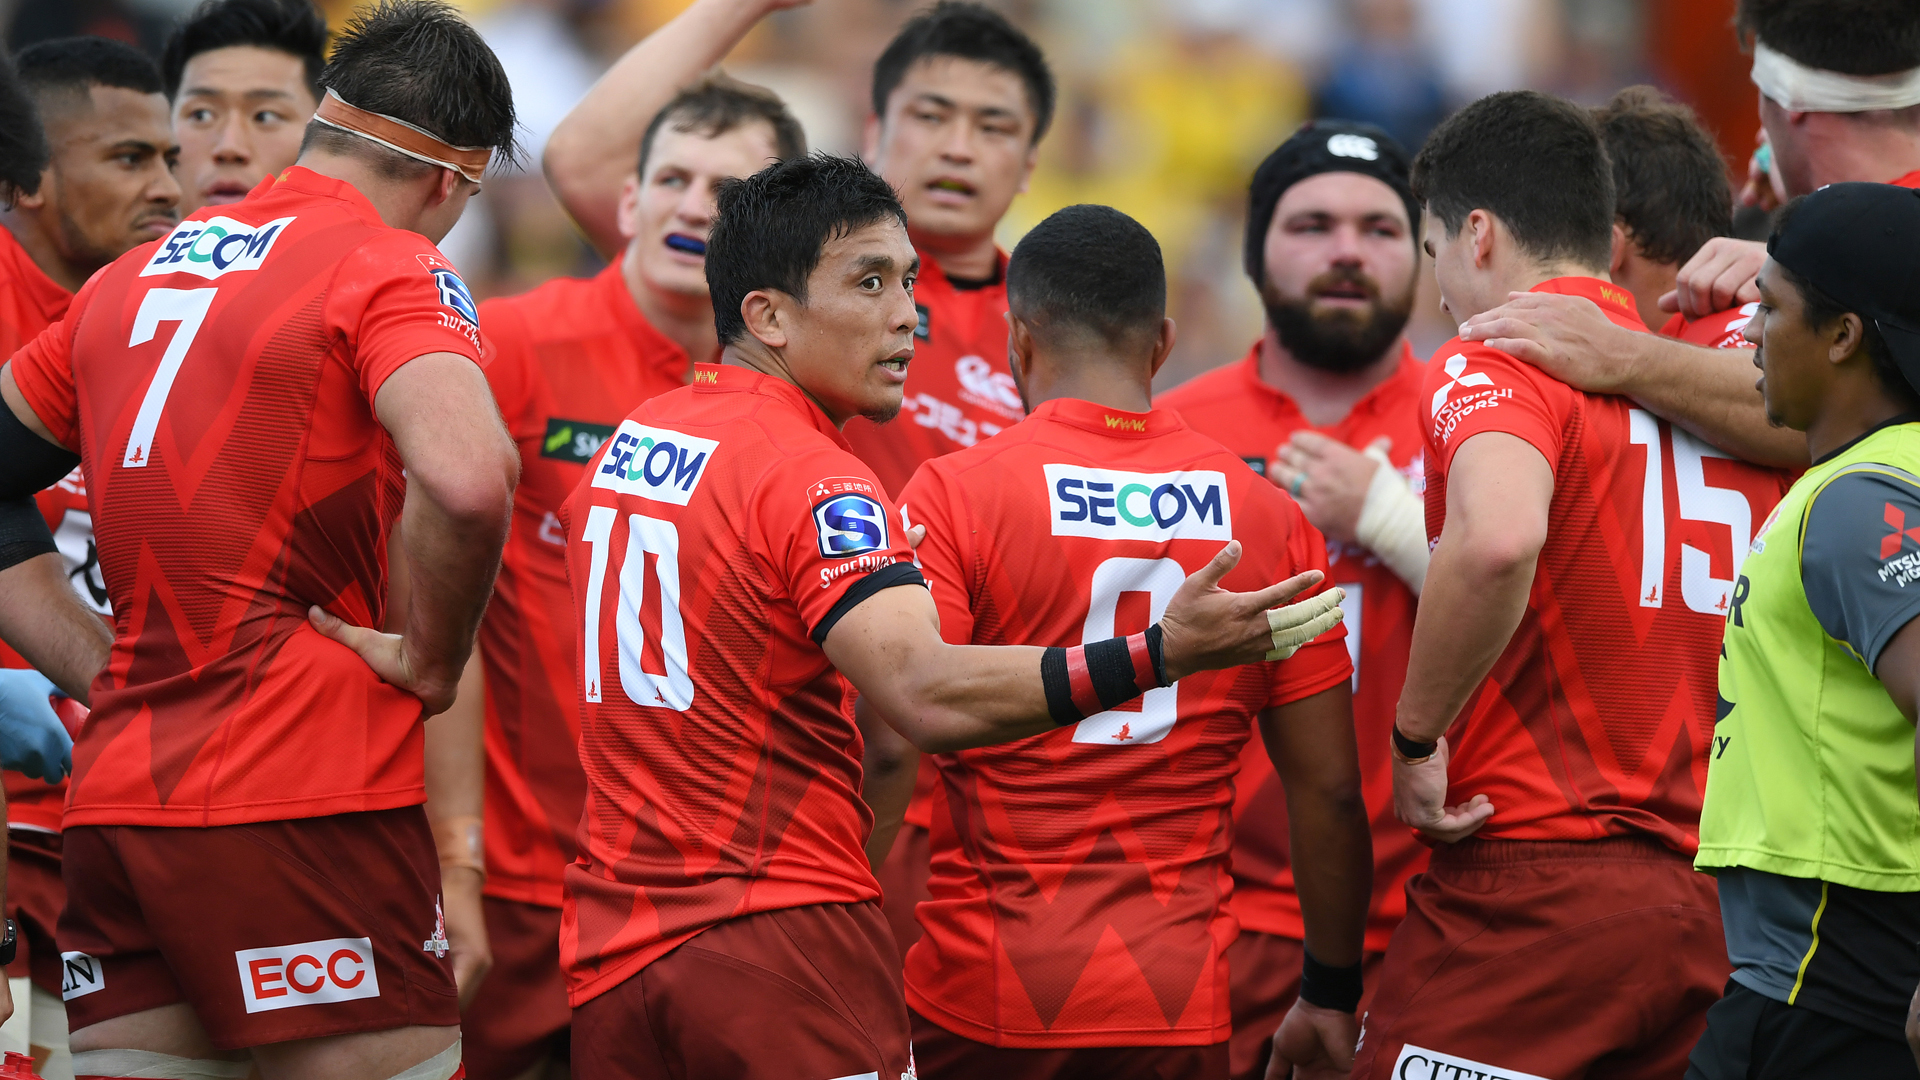 Coronavirus: Sunwolves won't play in Australia-based Super Rugby competition